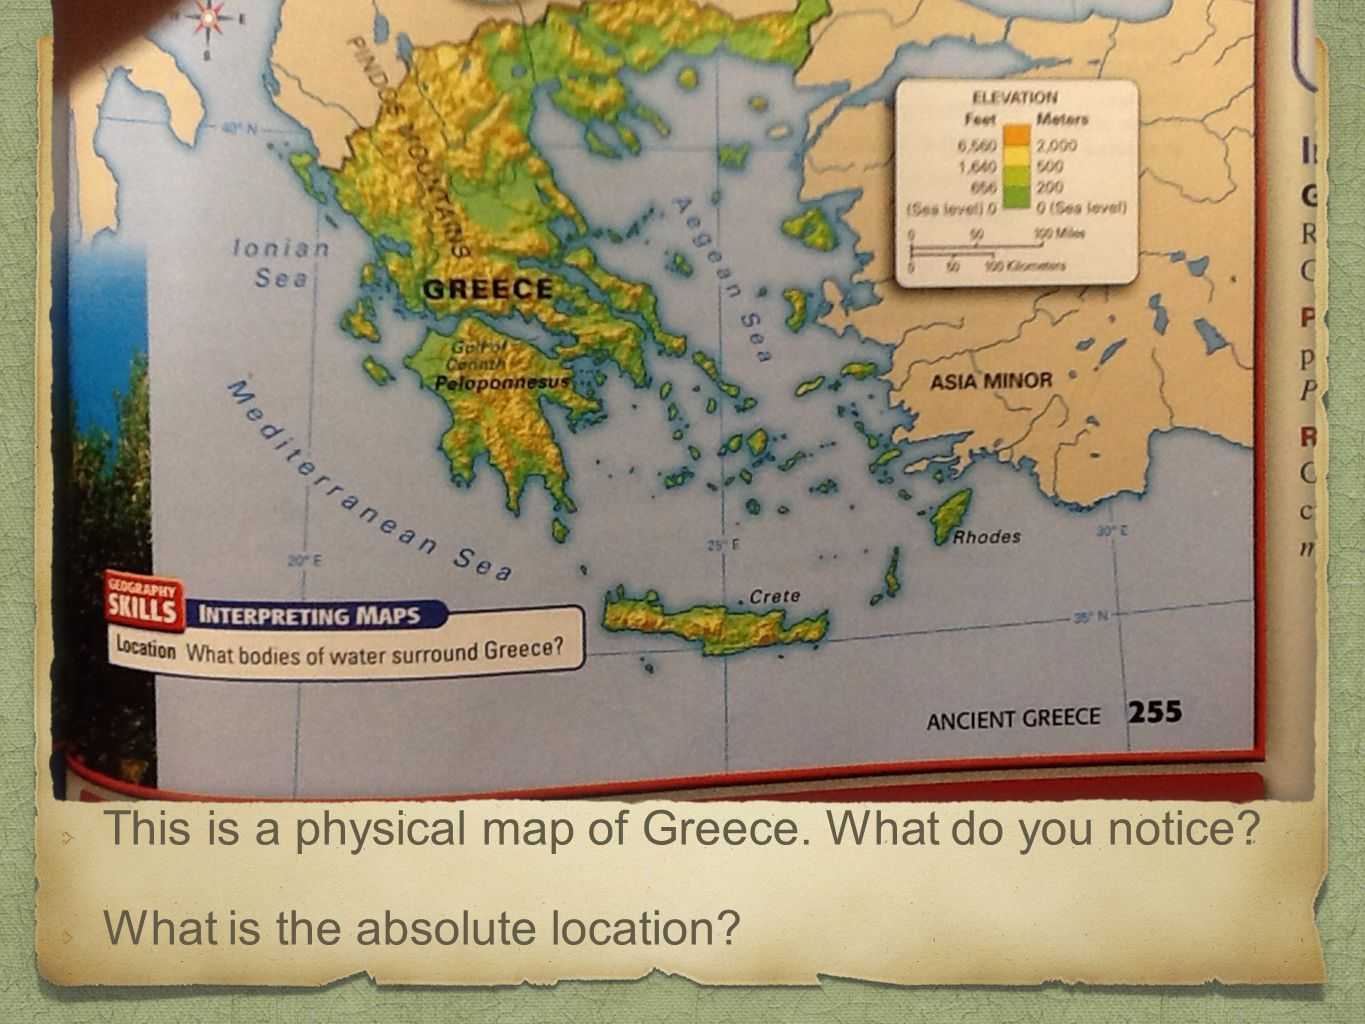 geography geography of greece Chap 25 - geography of ancient greece quiz review cards for miss liese's 7th grade history class learn with flashcards, games, and more — for free.